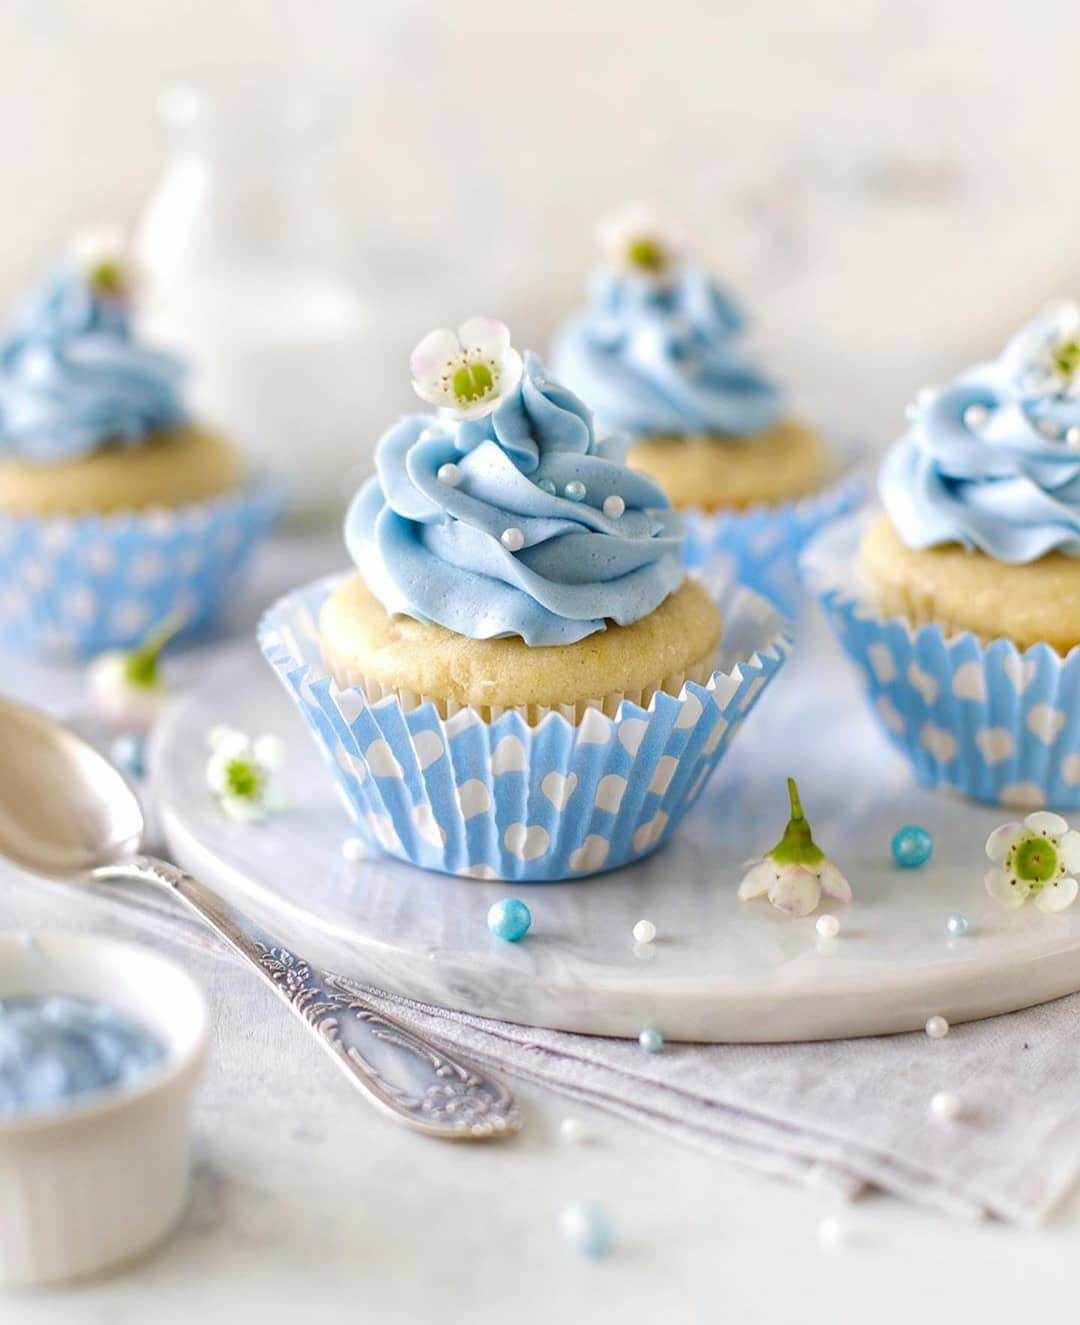 beautiful lemony muffins with sky blue spirulina frosting by display image  09a4ef8e